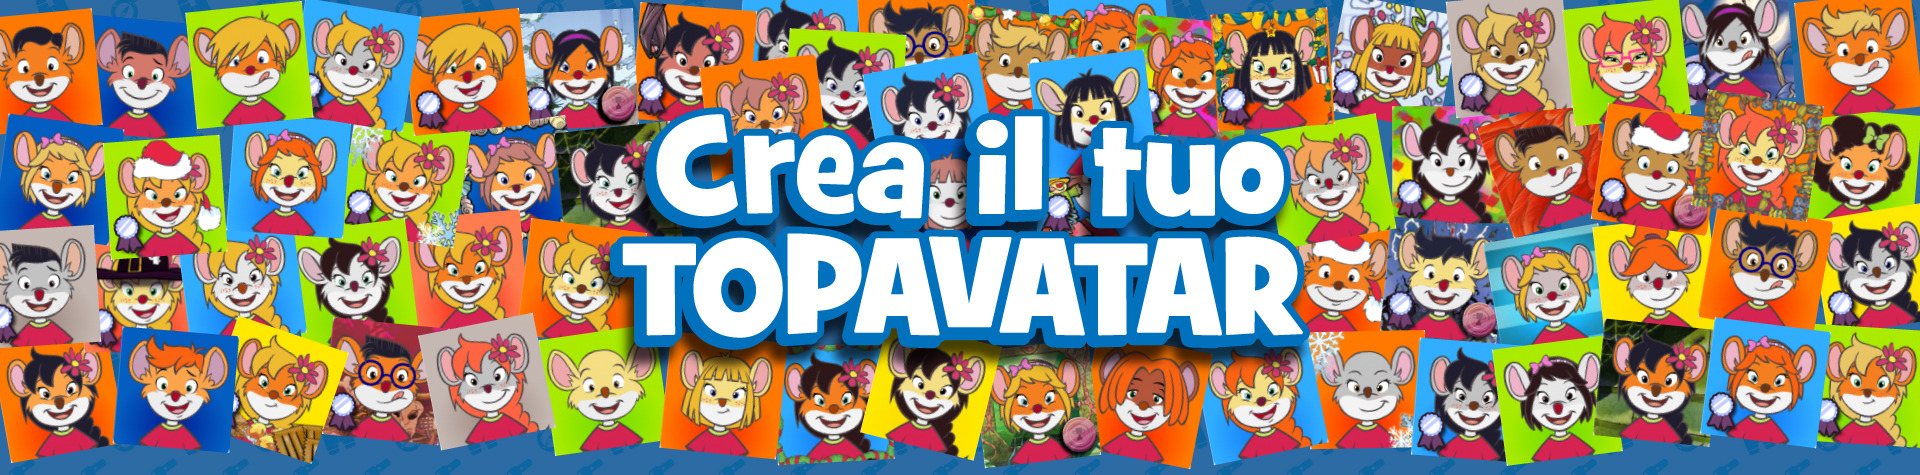 Crea il tuo topavatar ispirato all'estate